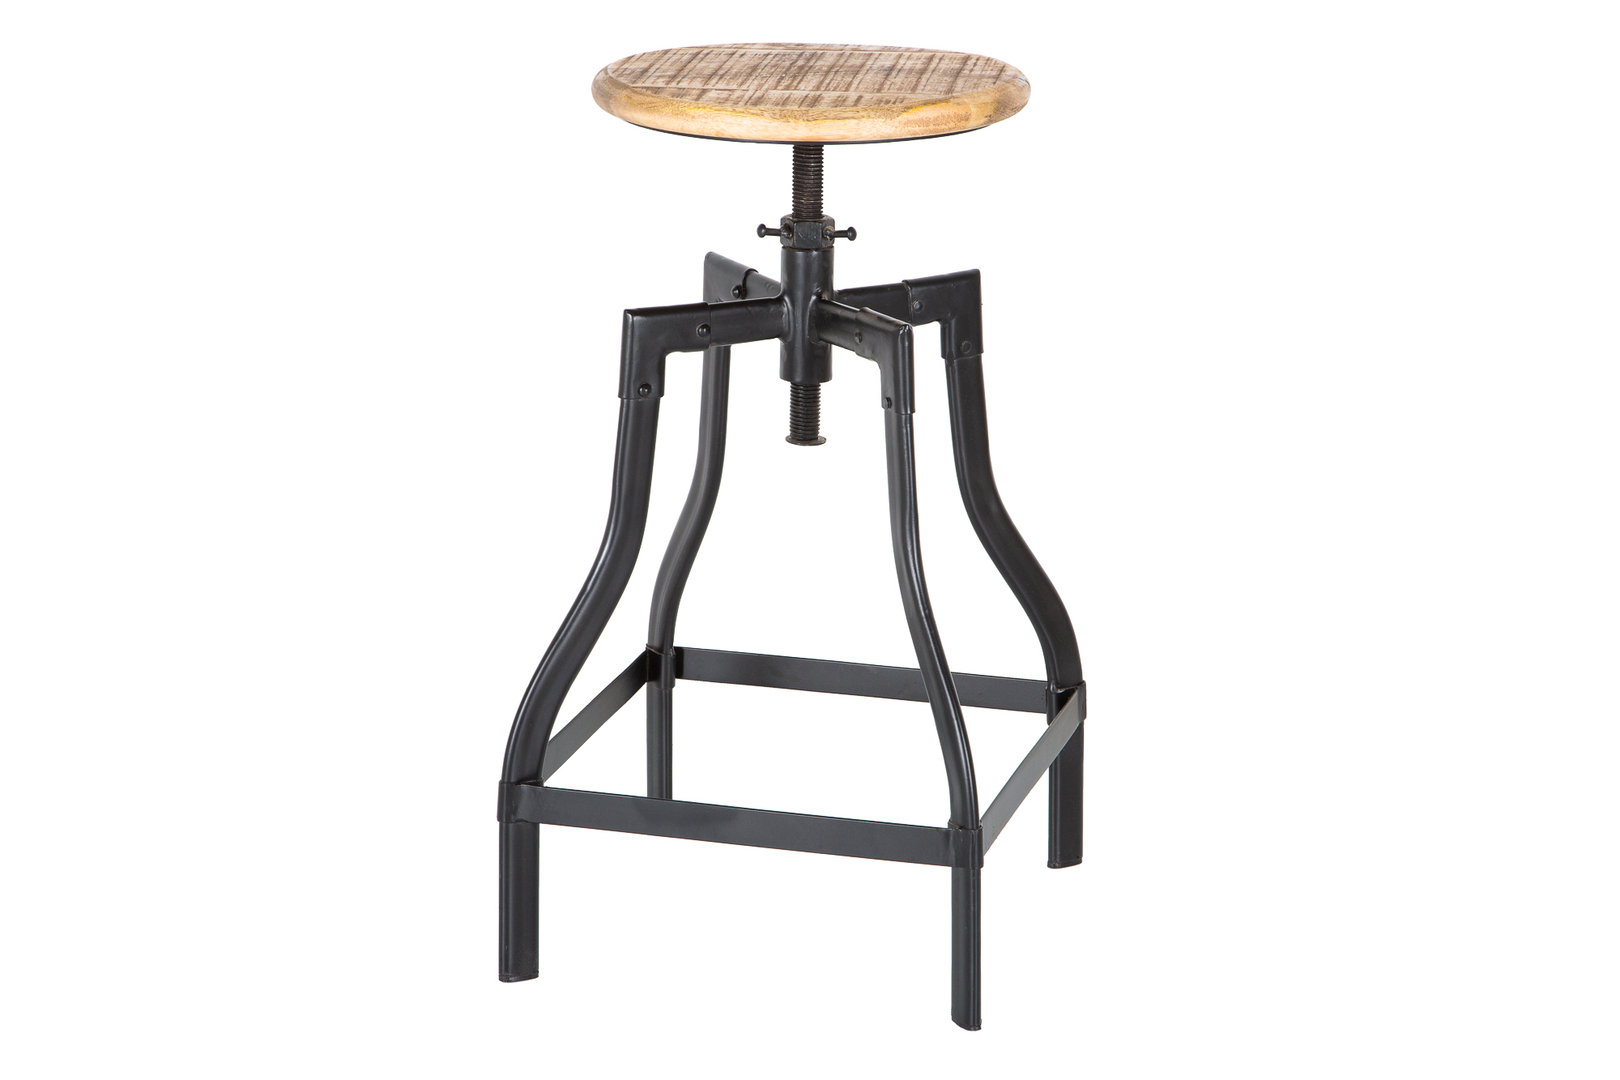 Sitzhocker natur Mango Massivholz Industrial Look Metall